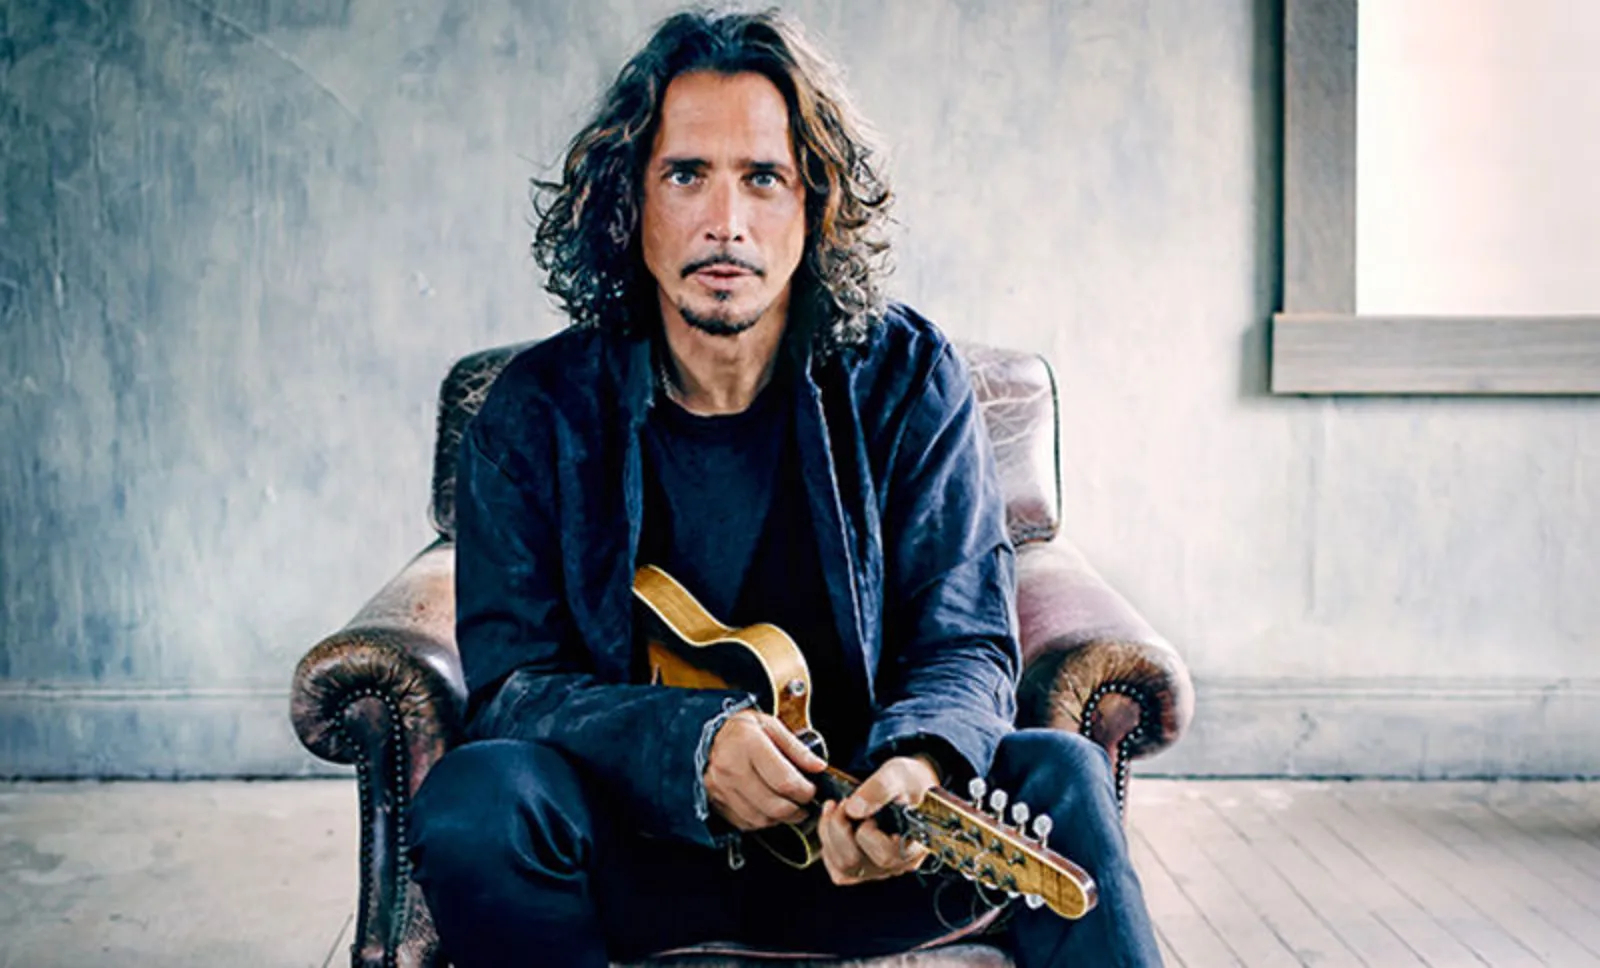 chris cornell 18 de mayo 2017 murio chris cornell